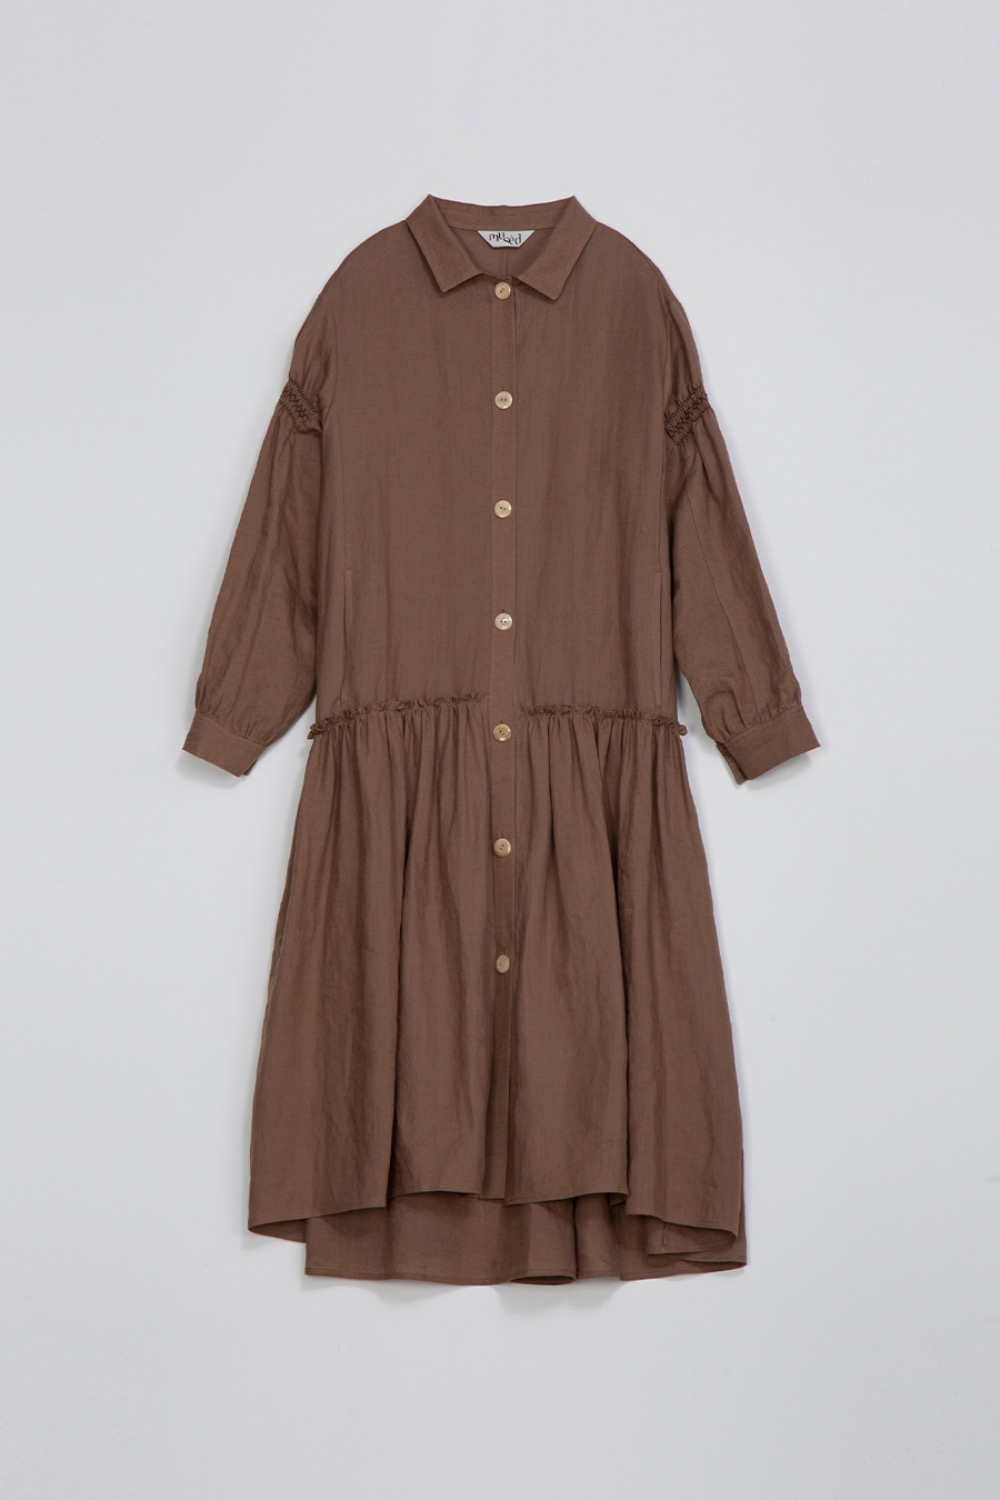 SAISON SHIRT DRESS - MOCHA LINEN